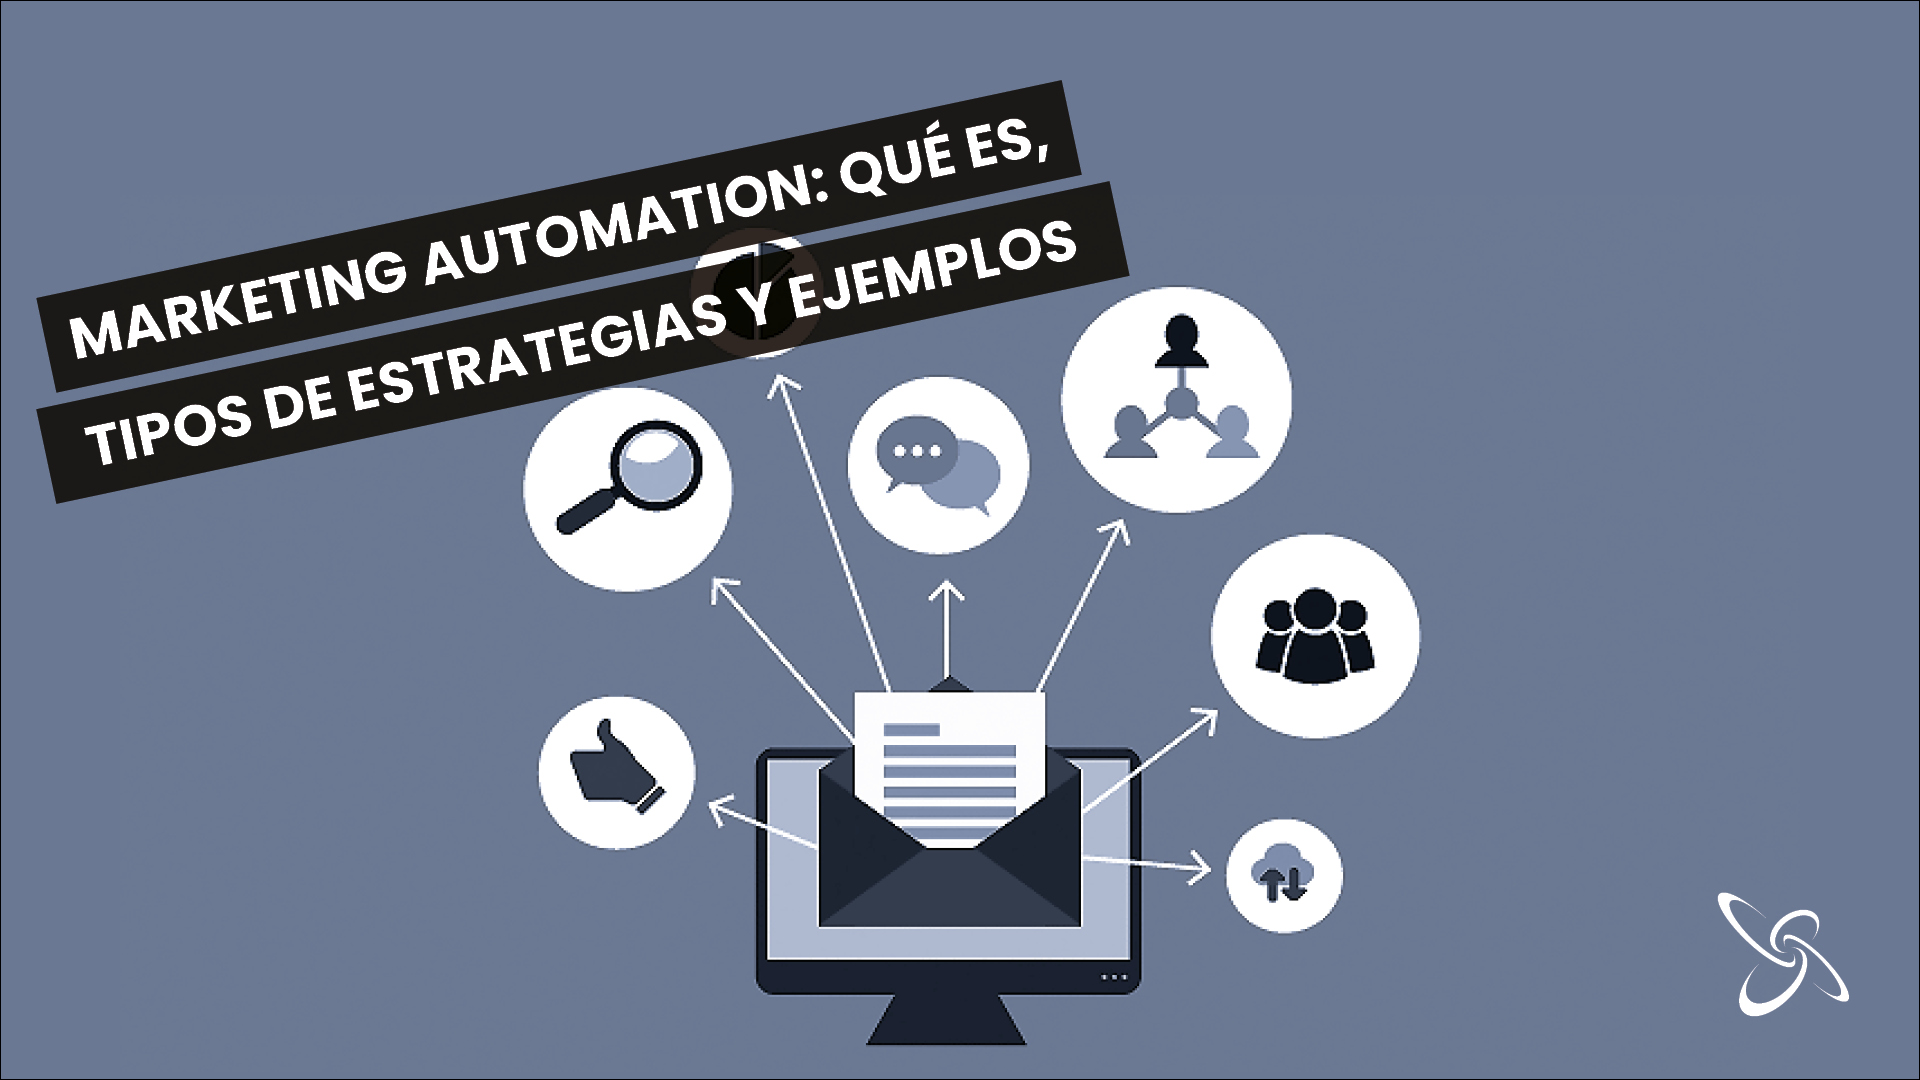 Marketing automation that is and strategies